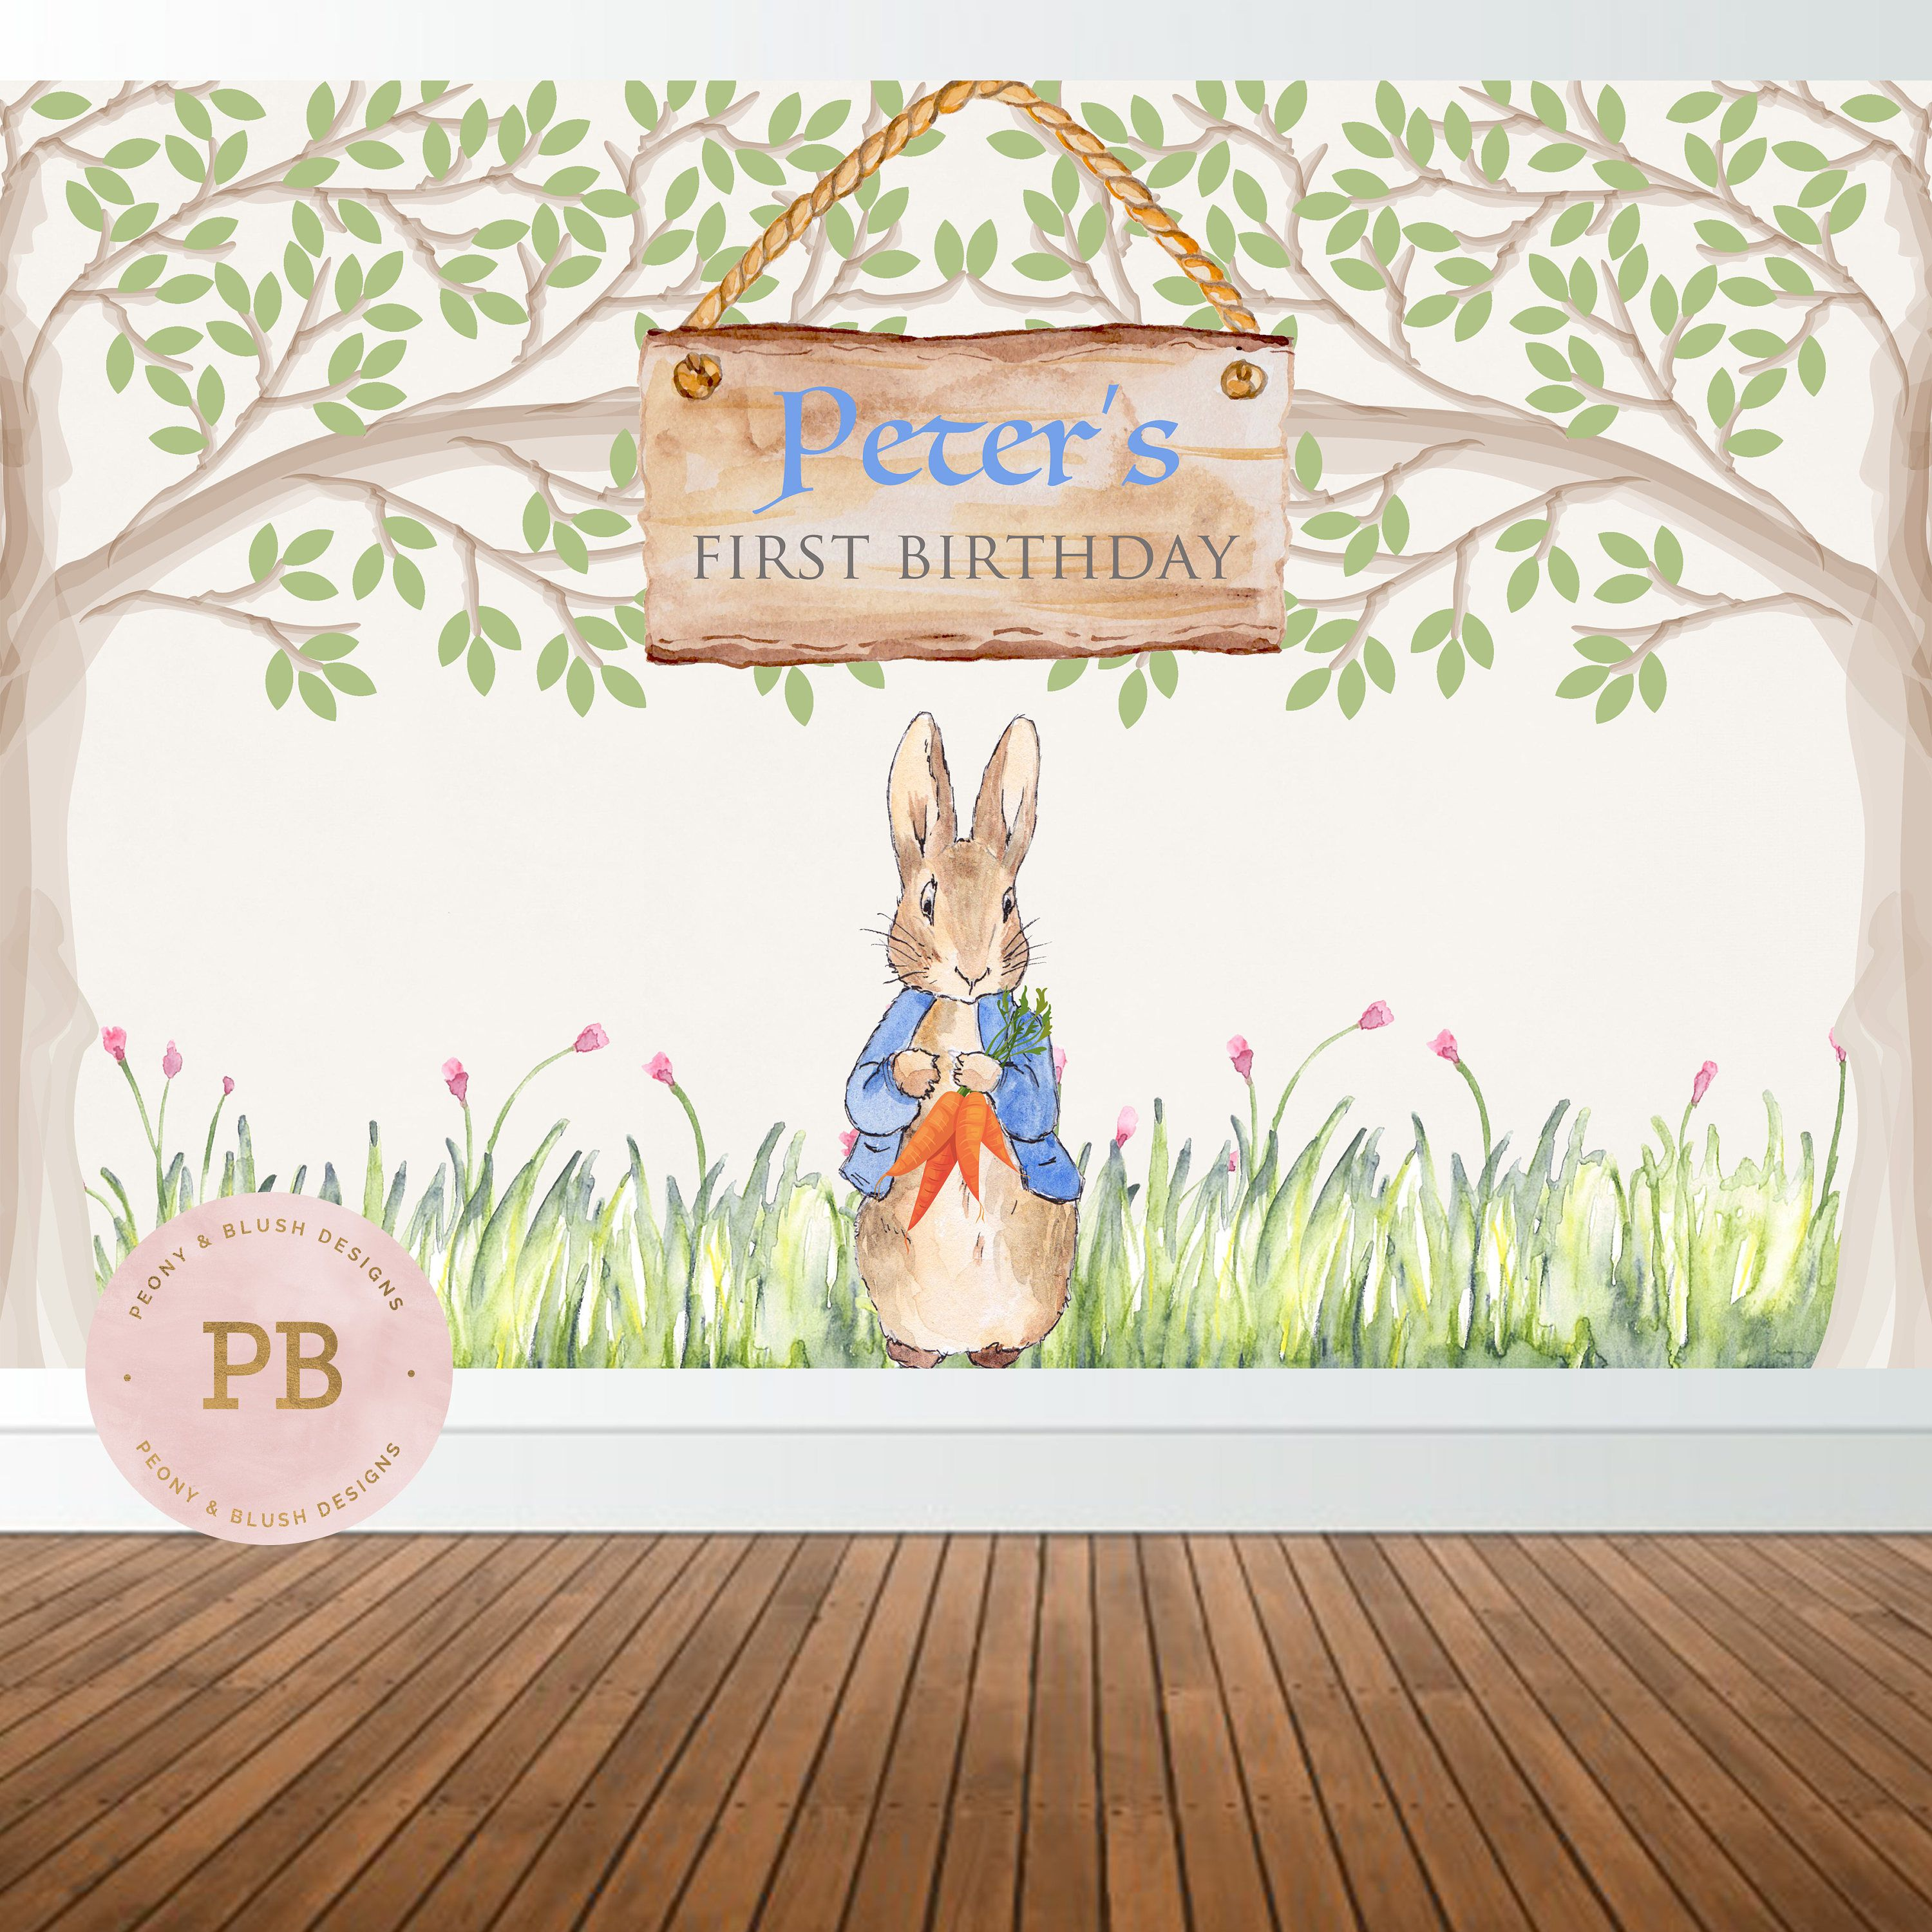 Mesmerizing Peter Rabbit Birthday Backdrop Peter Rabbit Baby Shower Bunny Baby Cake Table Backdrop Peter Rabbit Birthday Backdrop Peter Rabbit Baby Shower Backdrop baby shower Baby Shower Backdrop